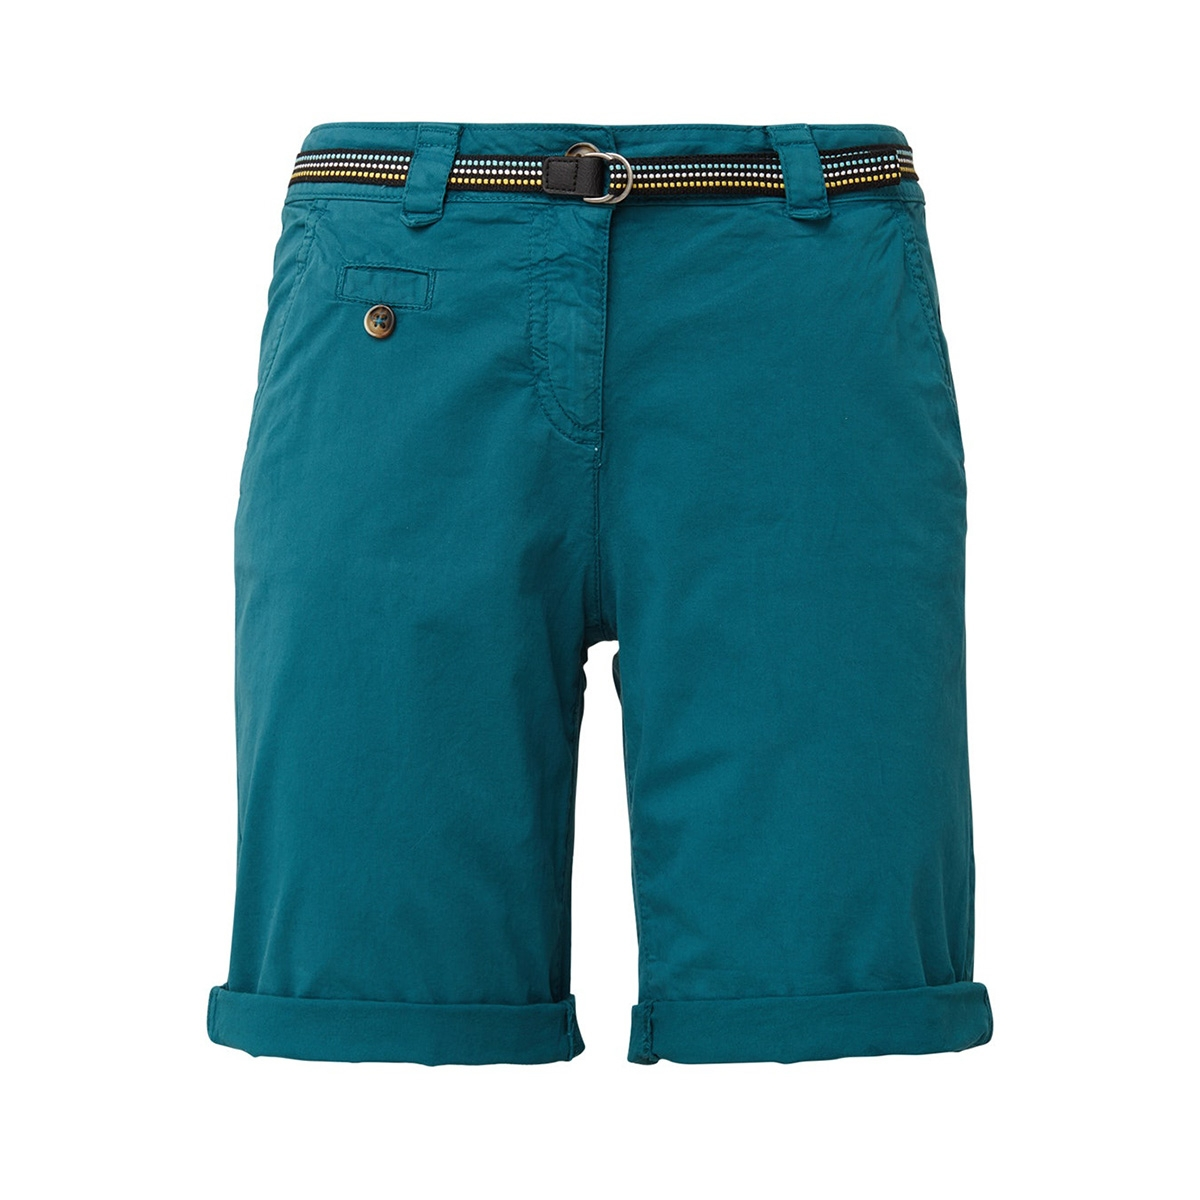 chino bermuda shorts 1011151xx70 tom tailor korte broek 11011